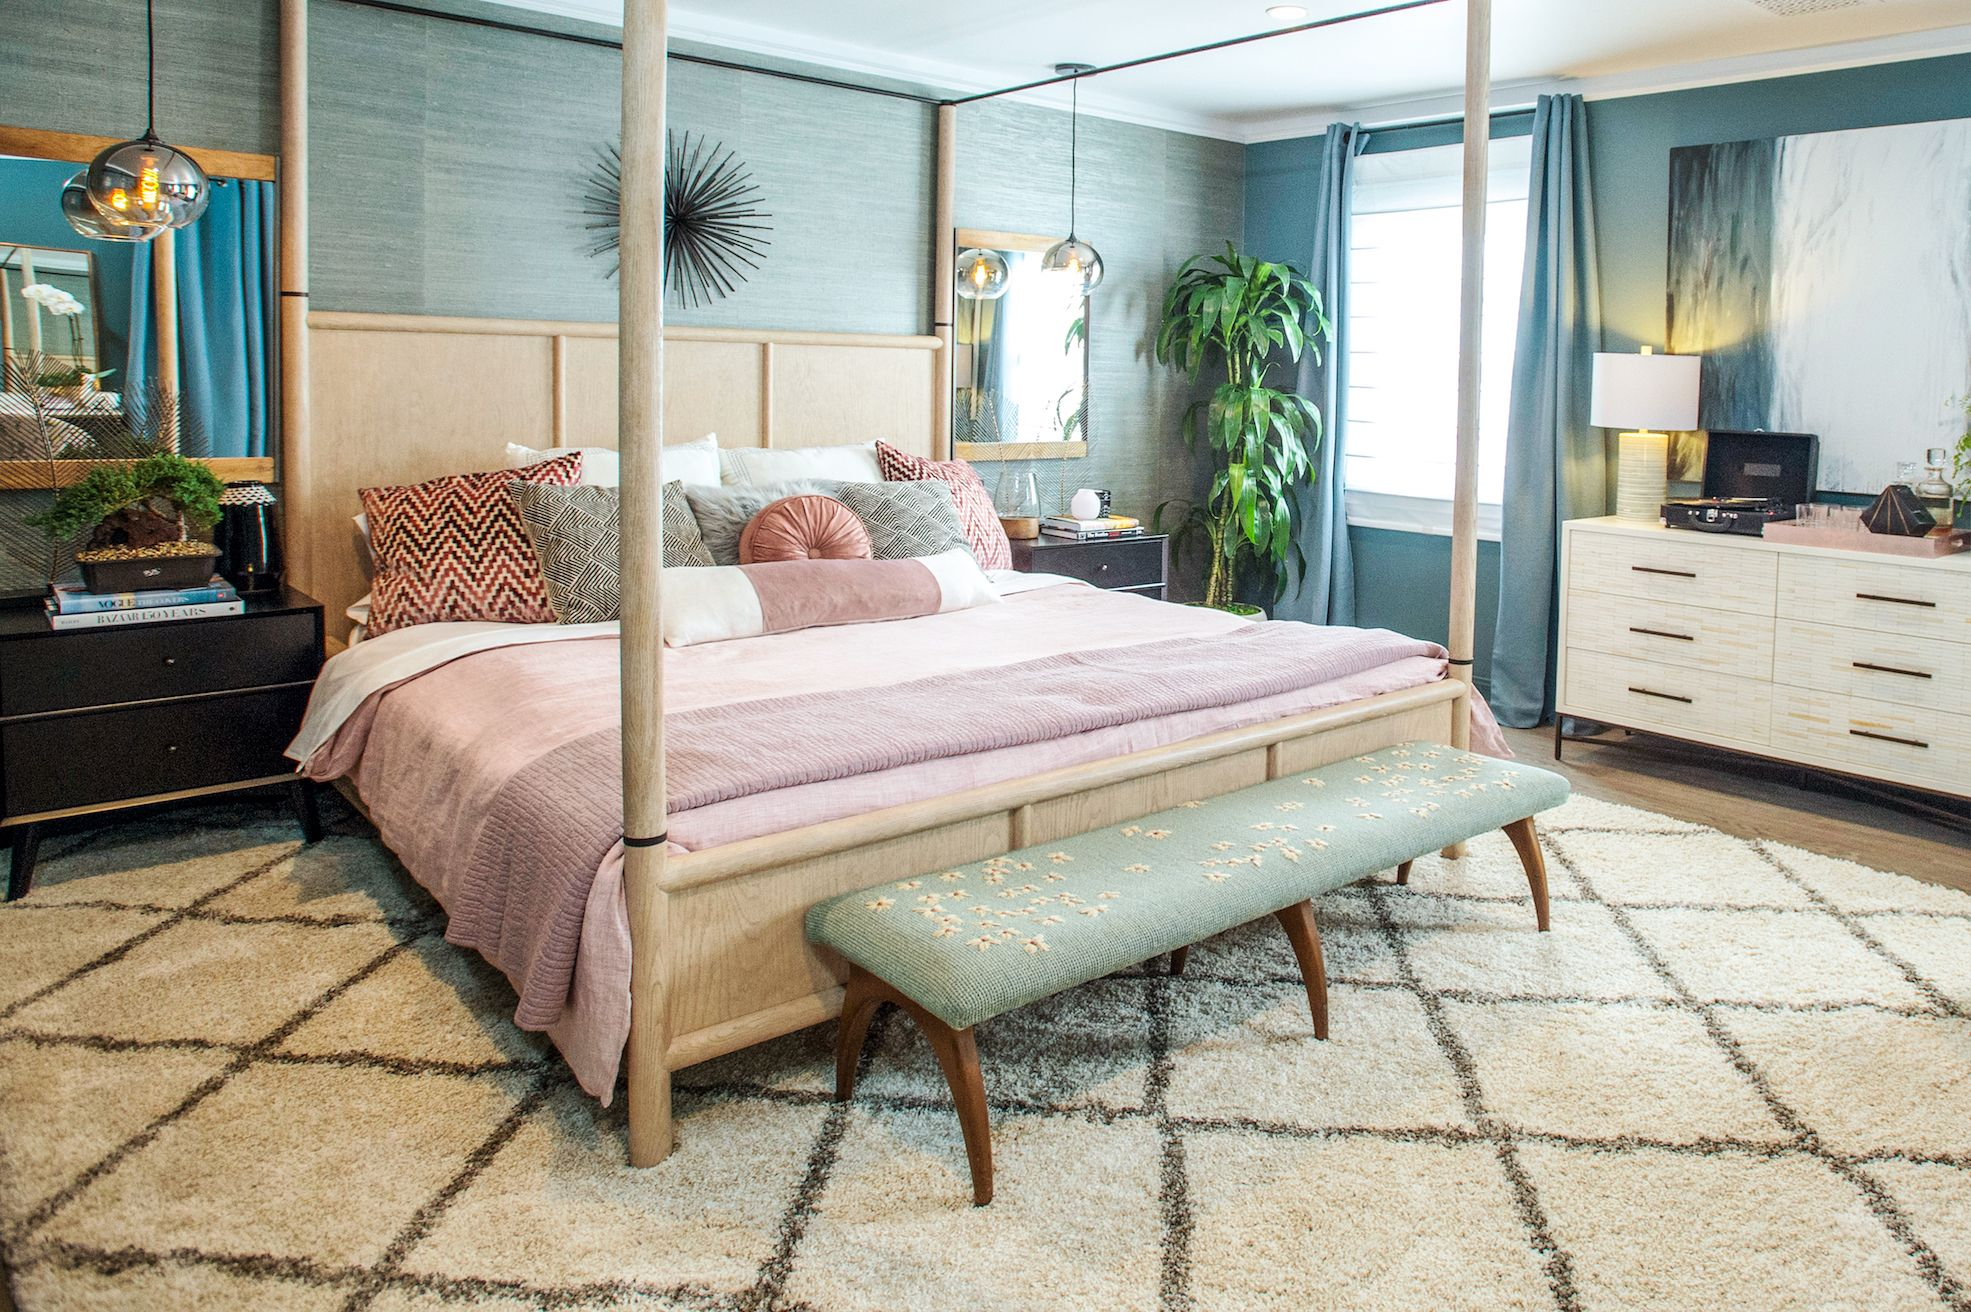 With actress Kaley Cuoco and designer Jeff Andrews as guest judges, two designers compete to create an impressive bedroom oasis.